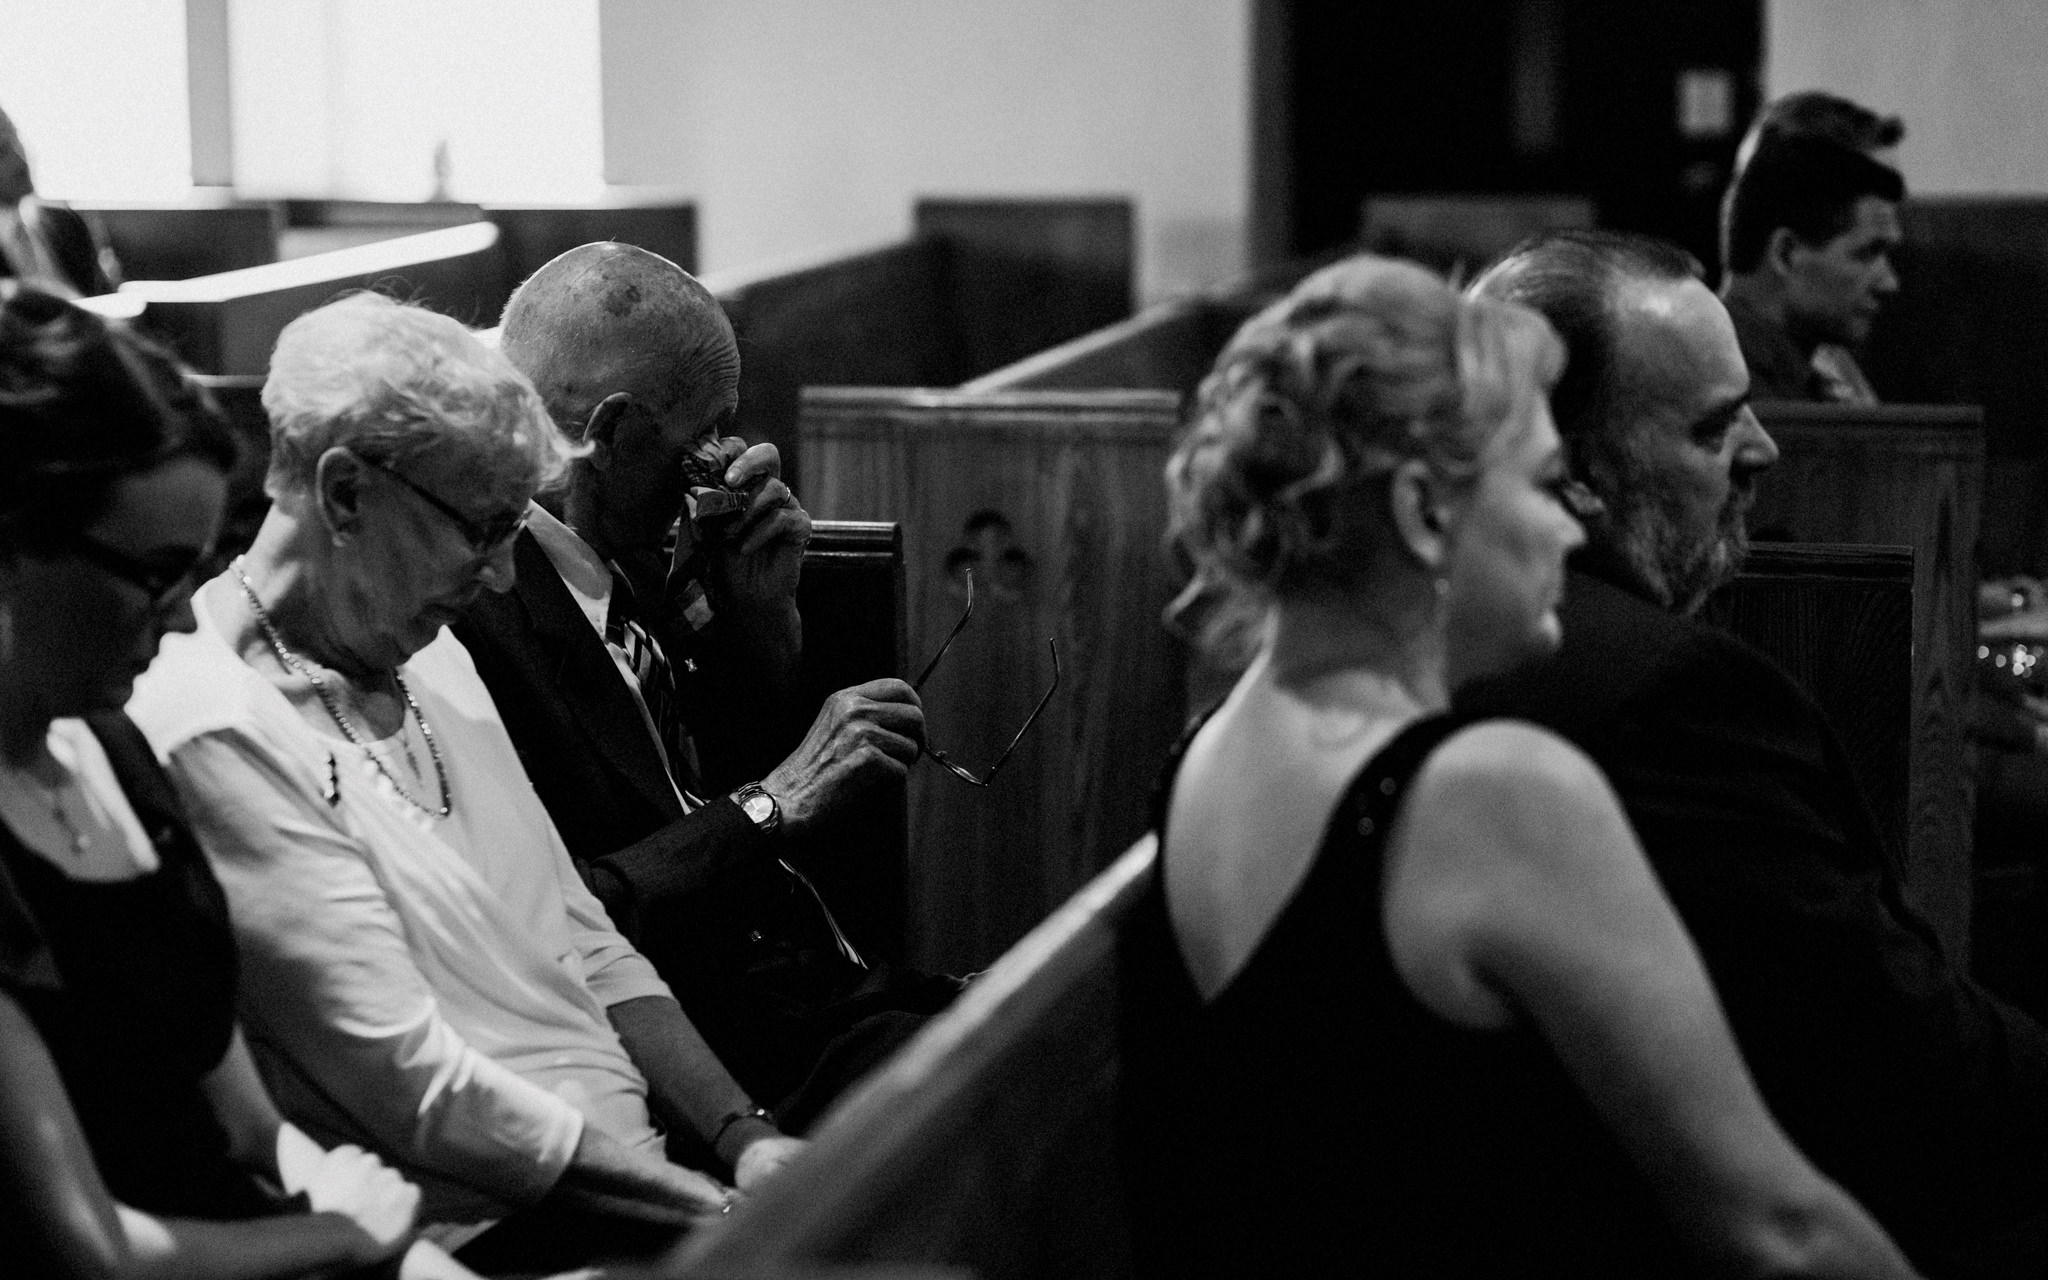 grandfather cries during vows